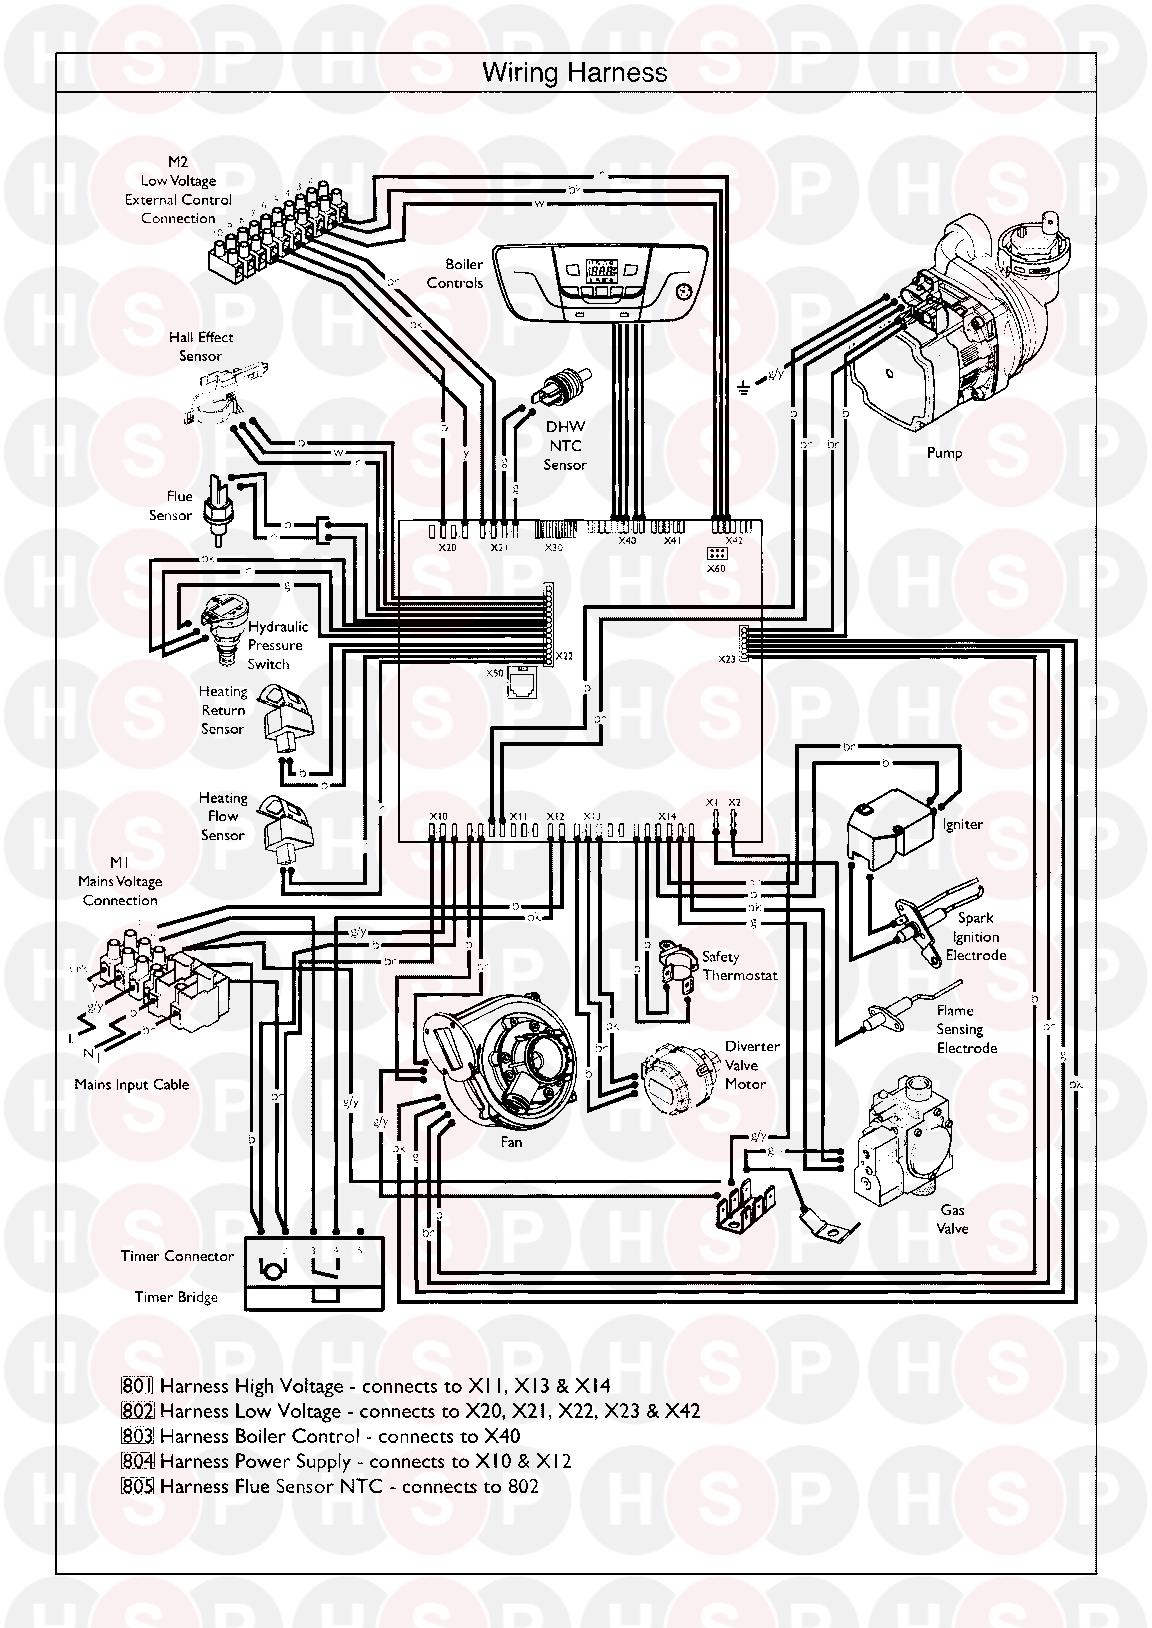 Baxi Plus Combi 33 Erp Wiring Harness Diagram Heating Spare Parts X10 Click The To Open It On A New Page